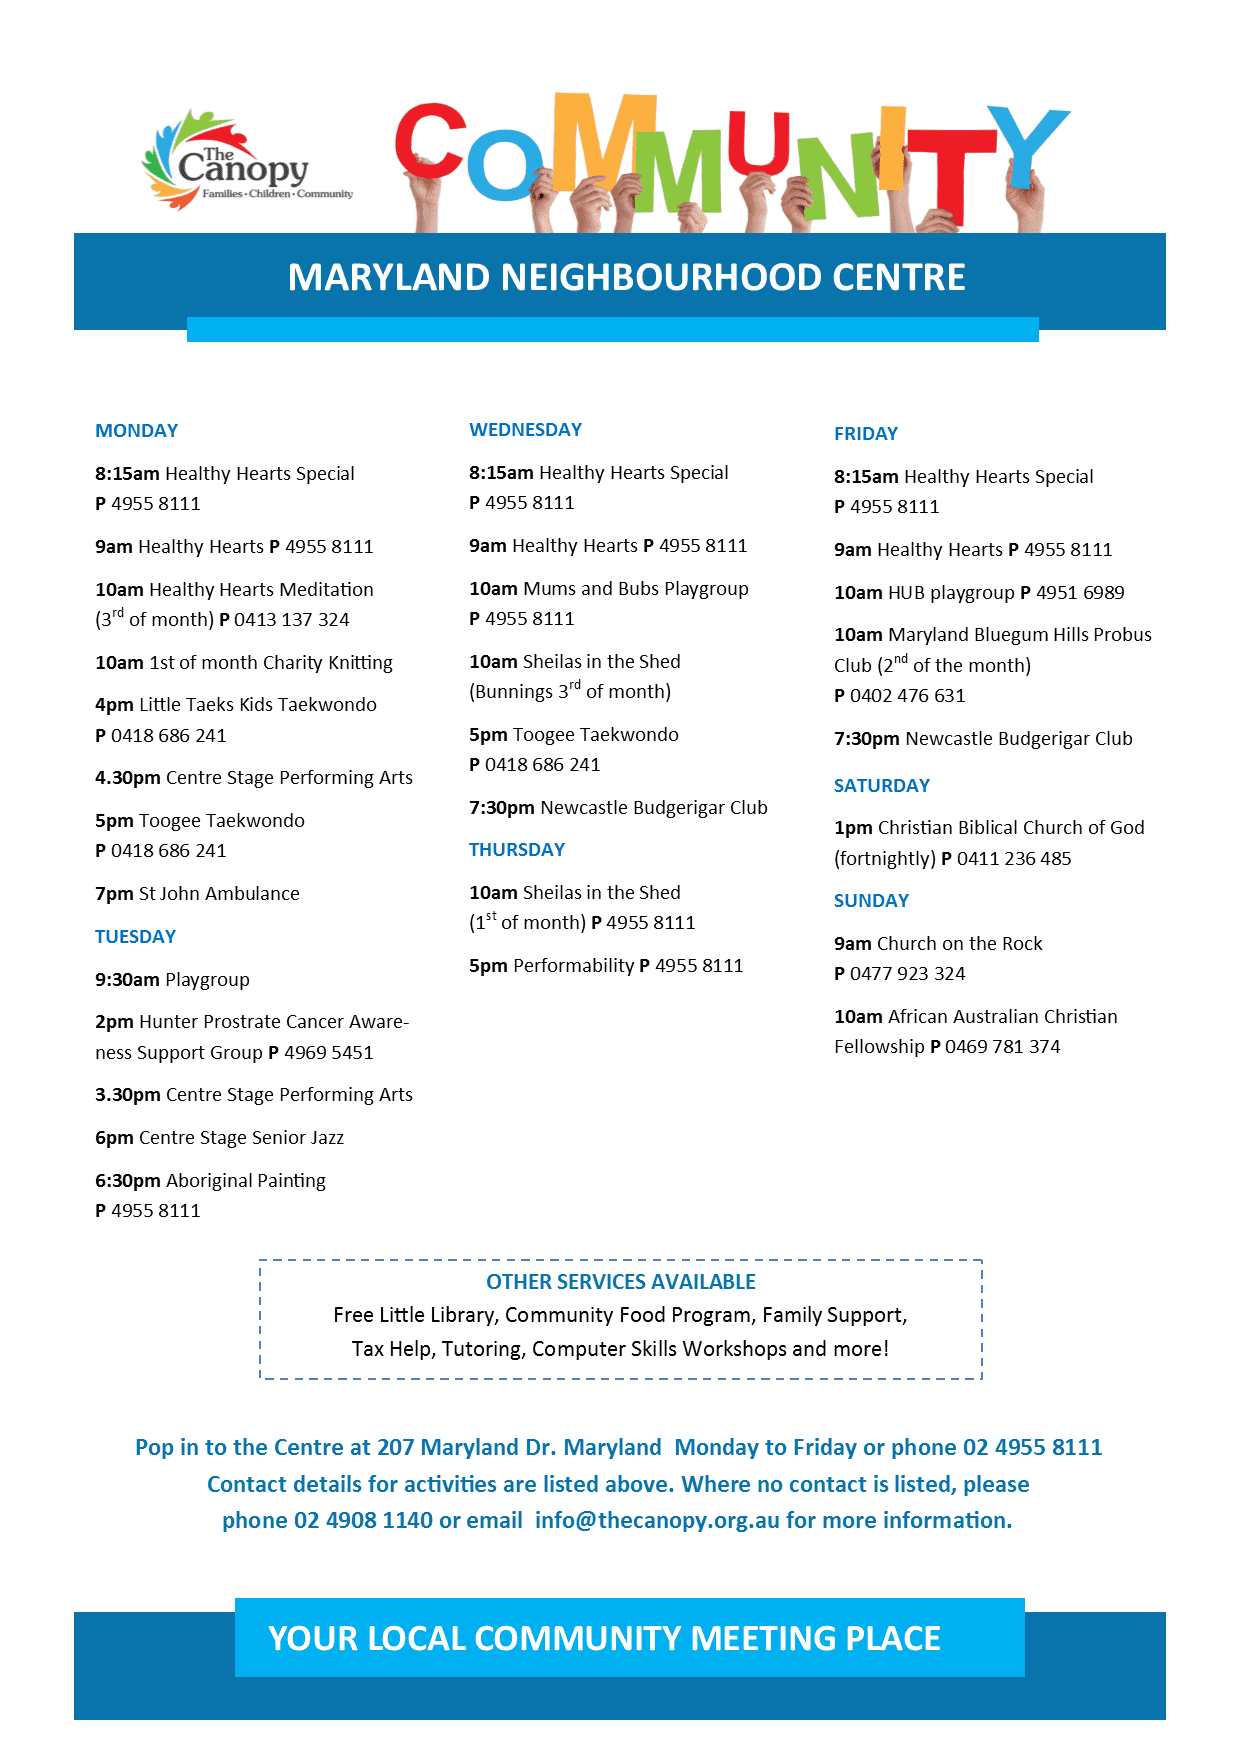 Maryland Neighbourhood Centre Activities - May 2017